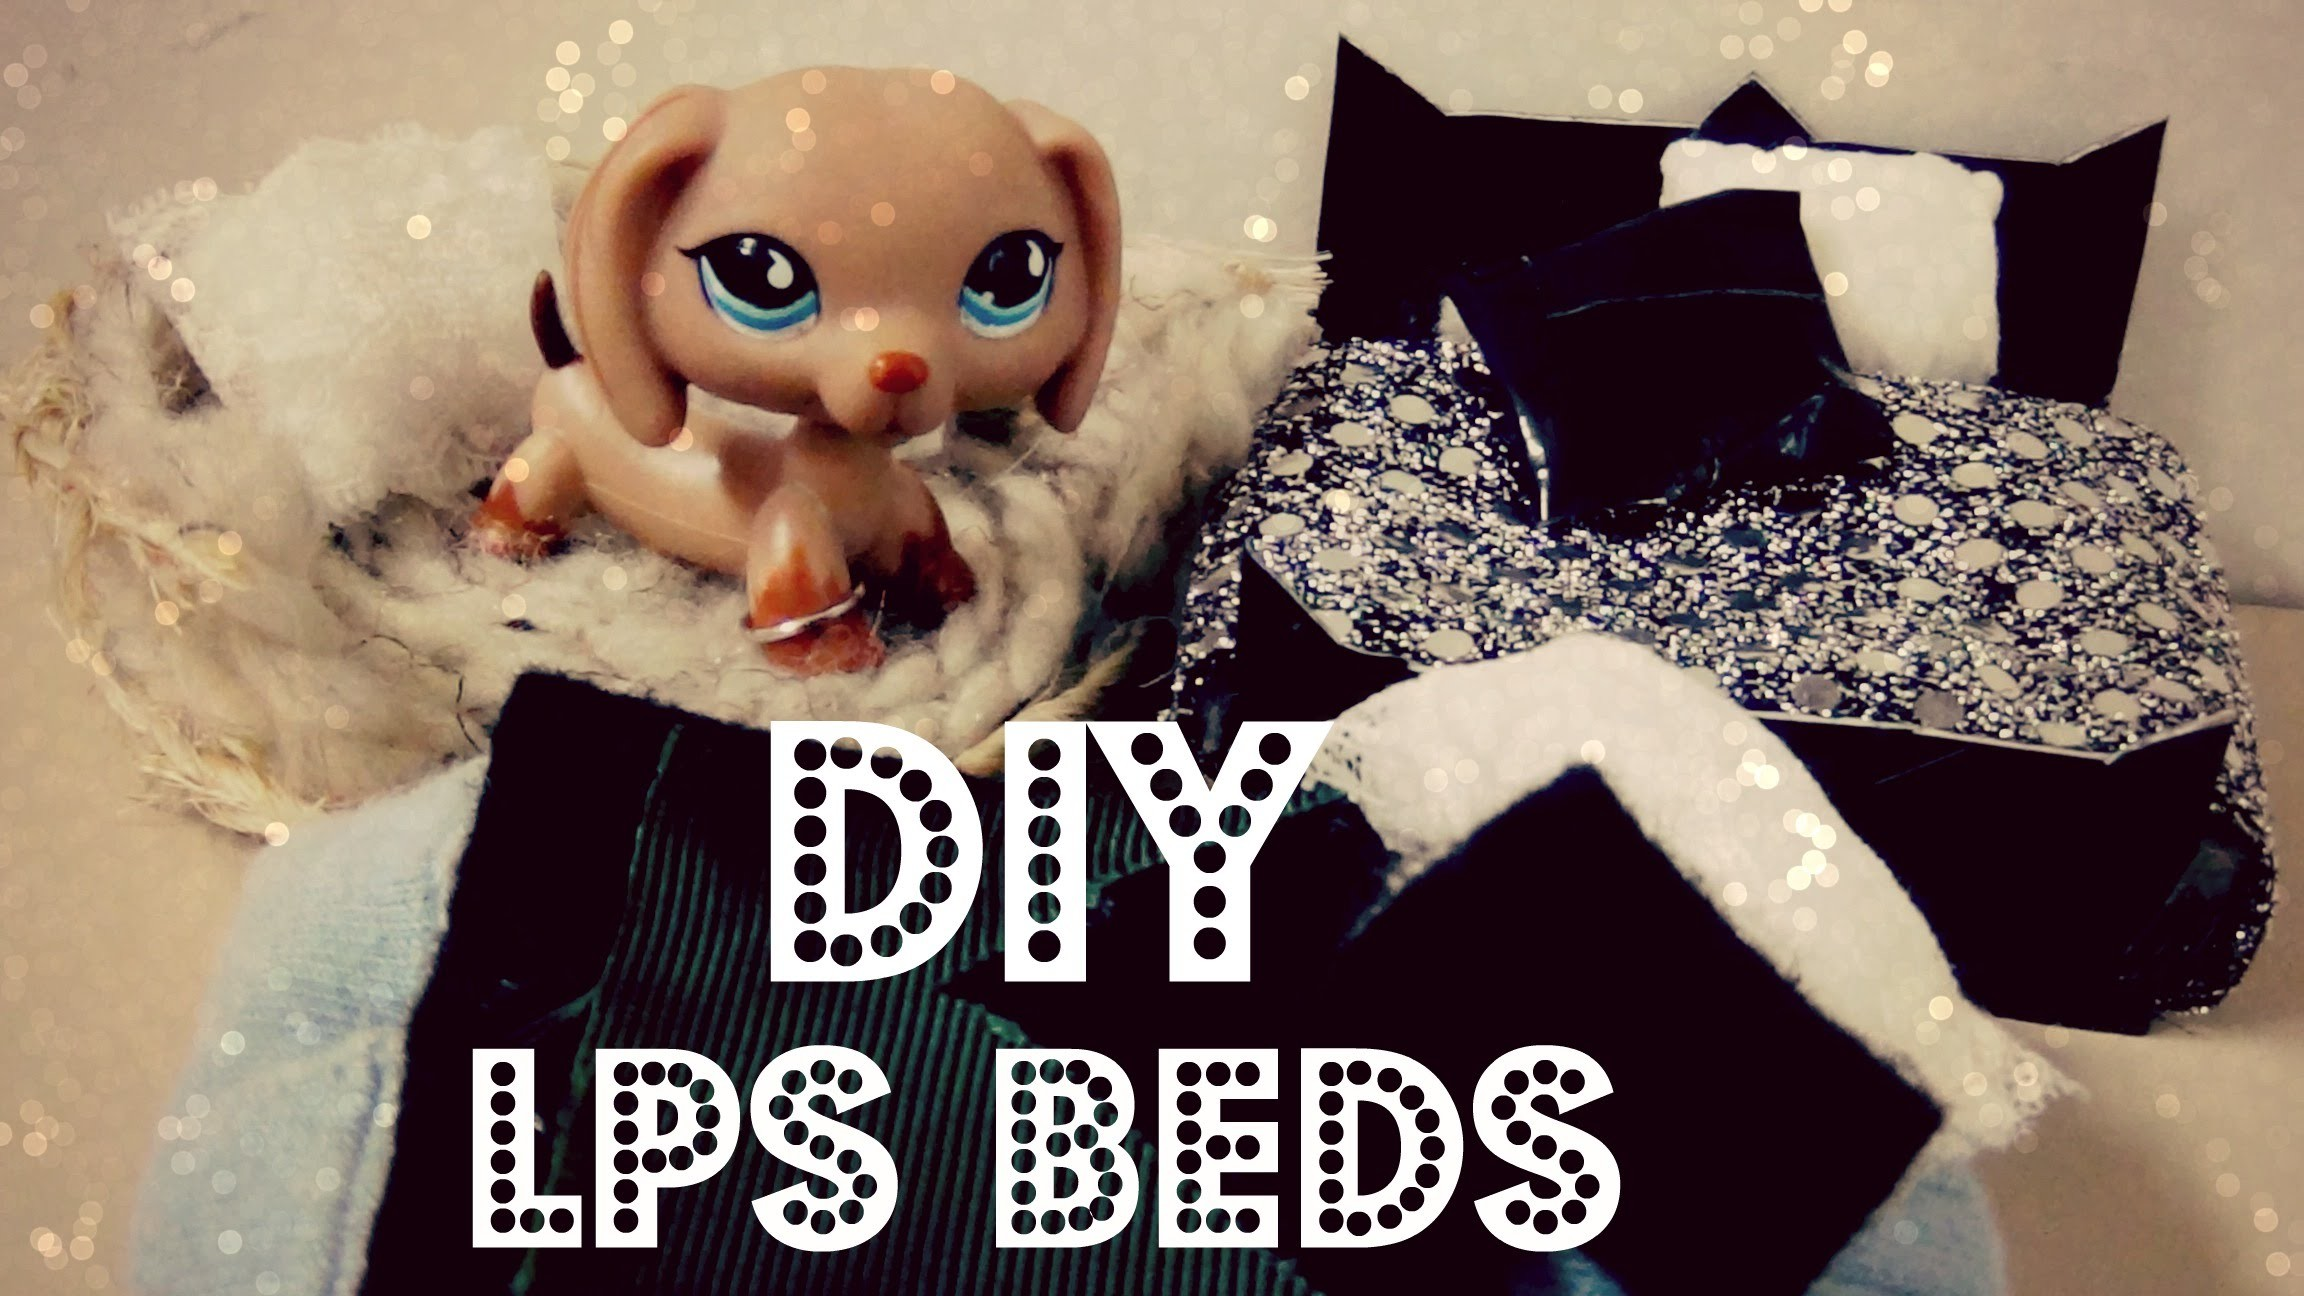 DIY 3 Lps Beds (Plush bed, Dog Bed, Traditional Bed)